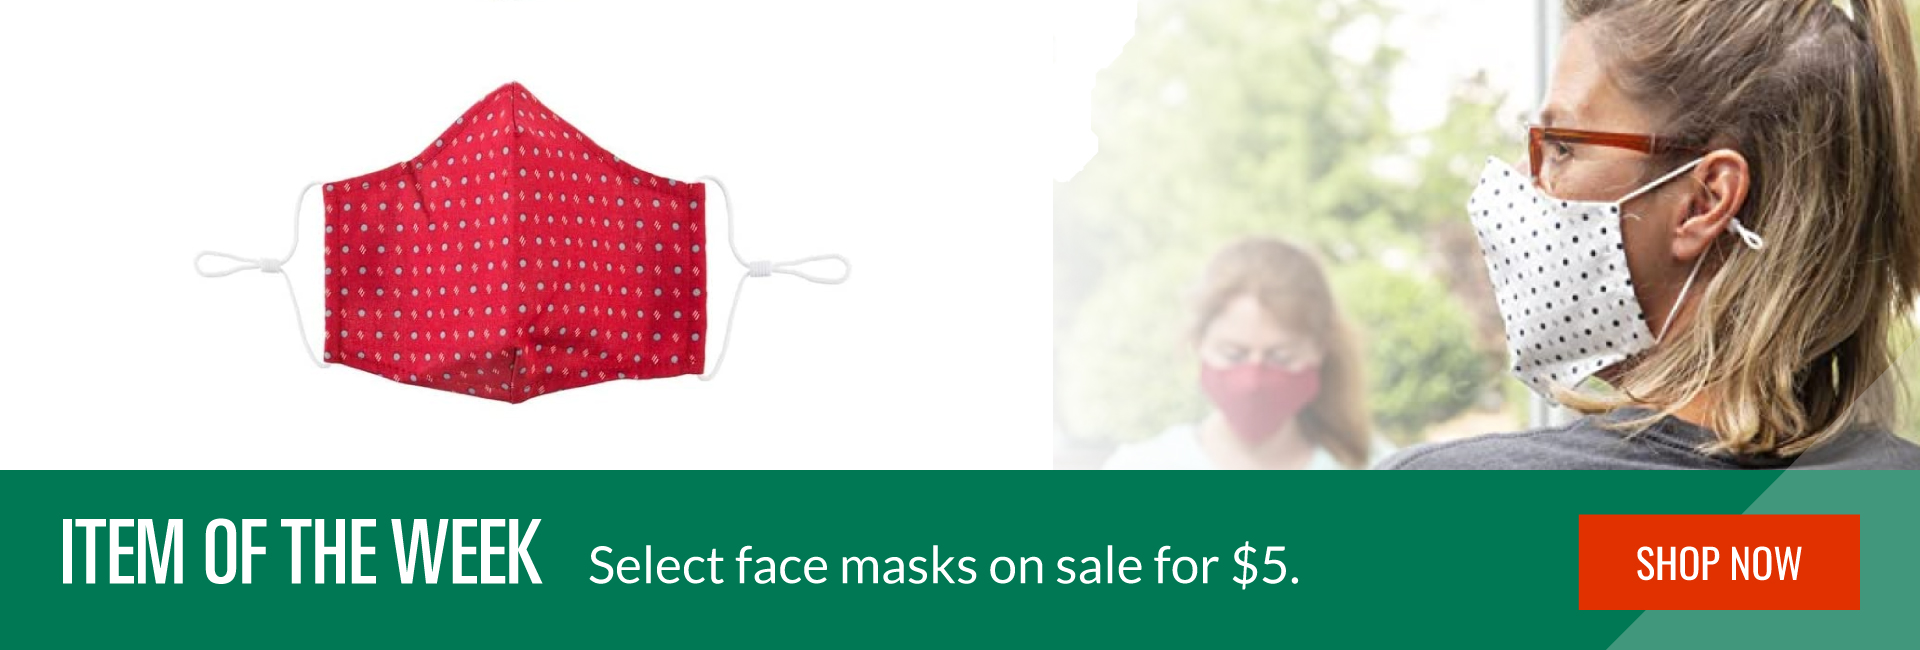 Select masks now $5 - Shop now